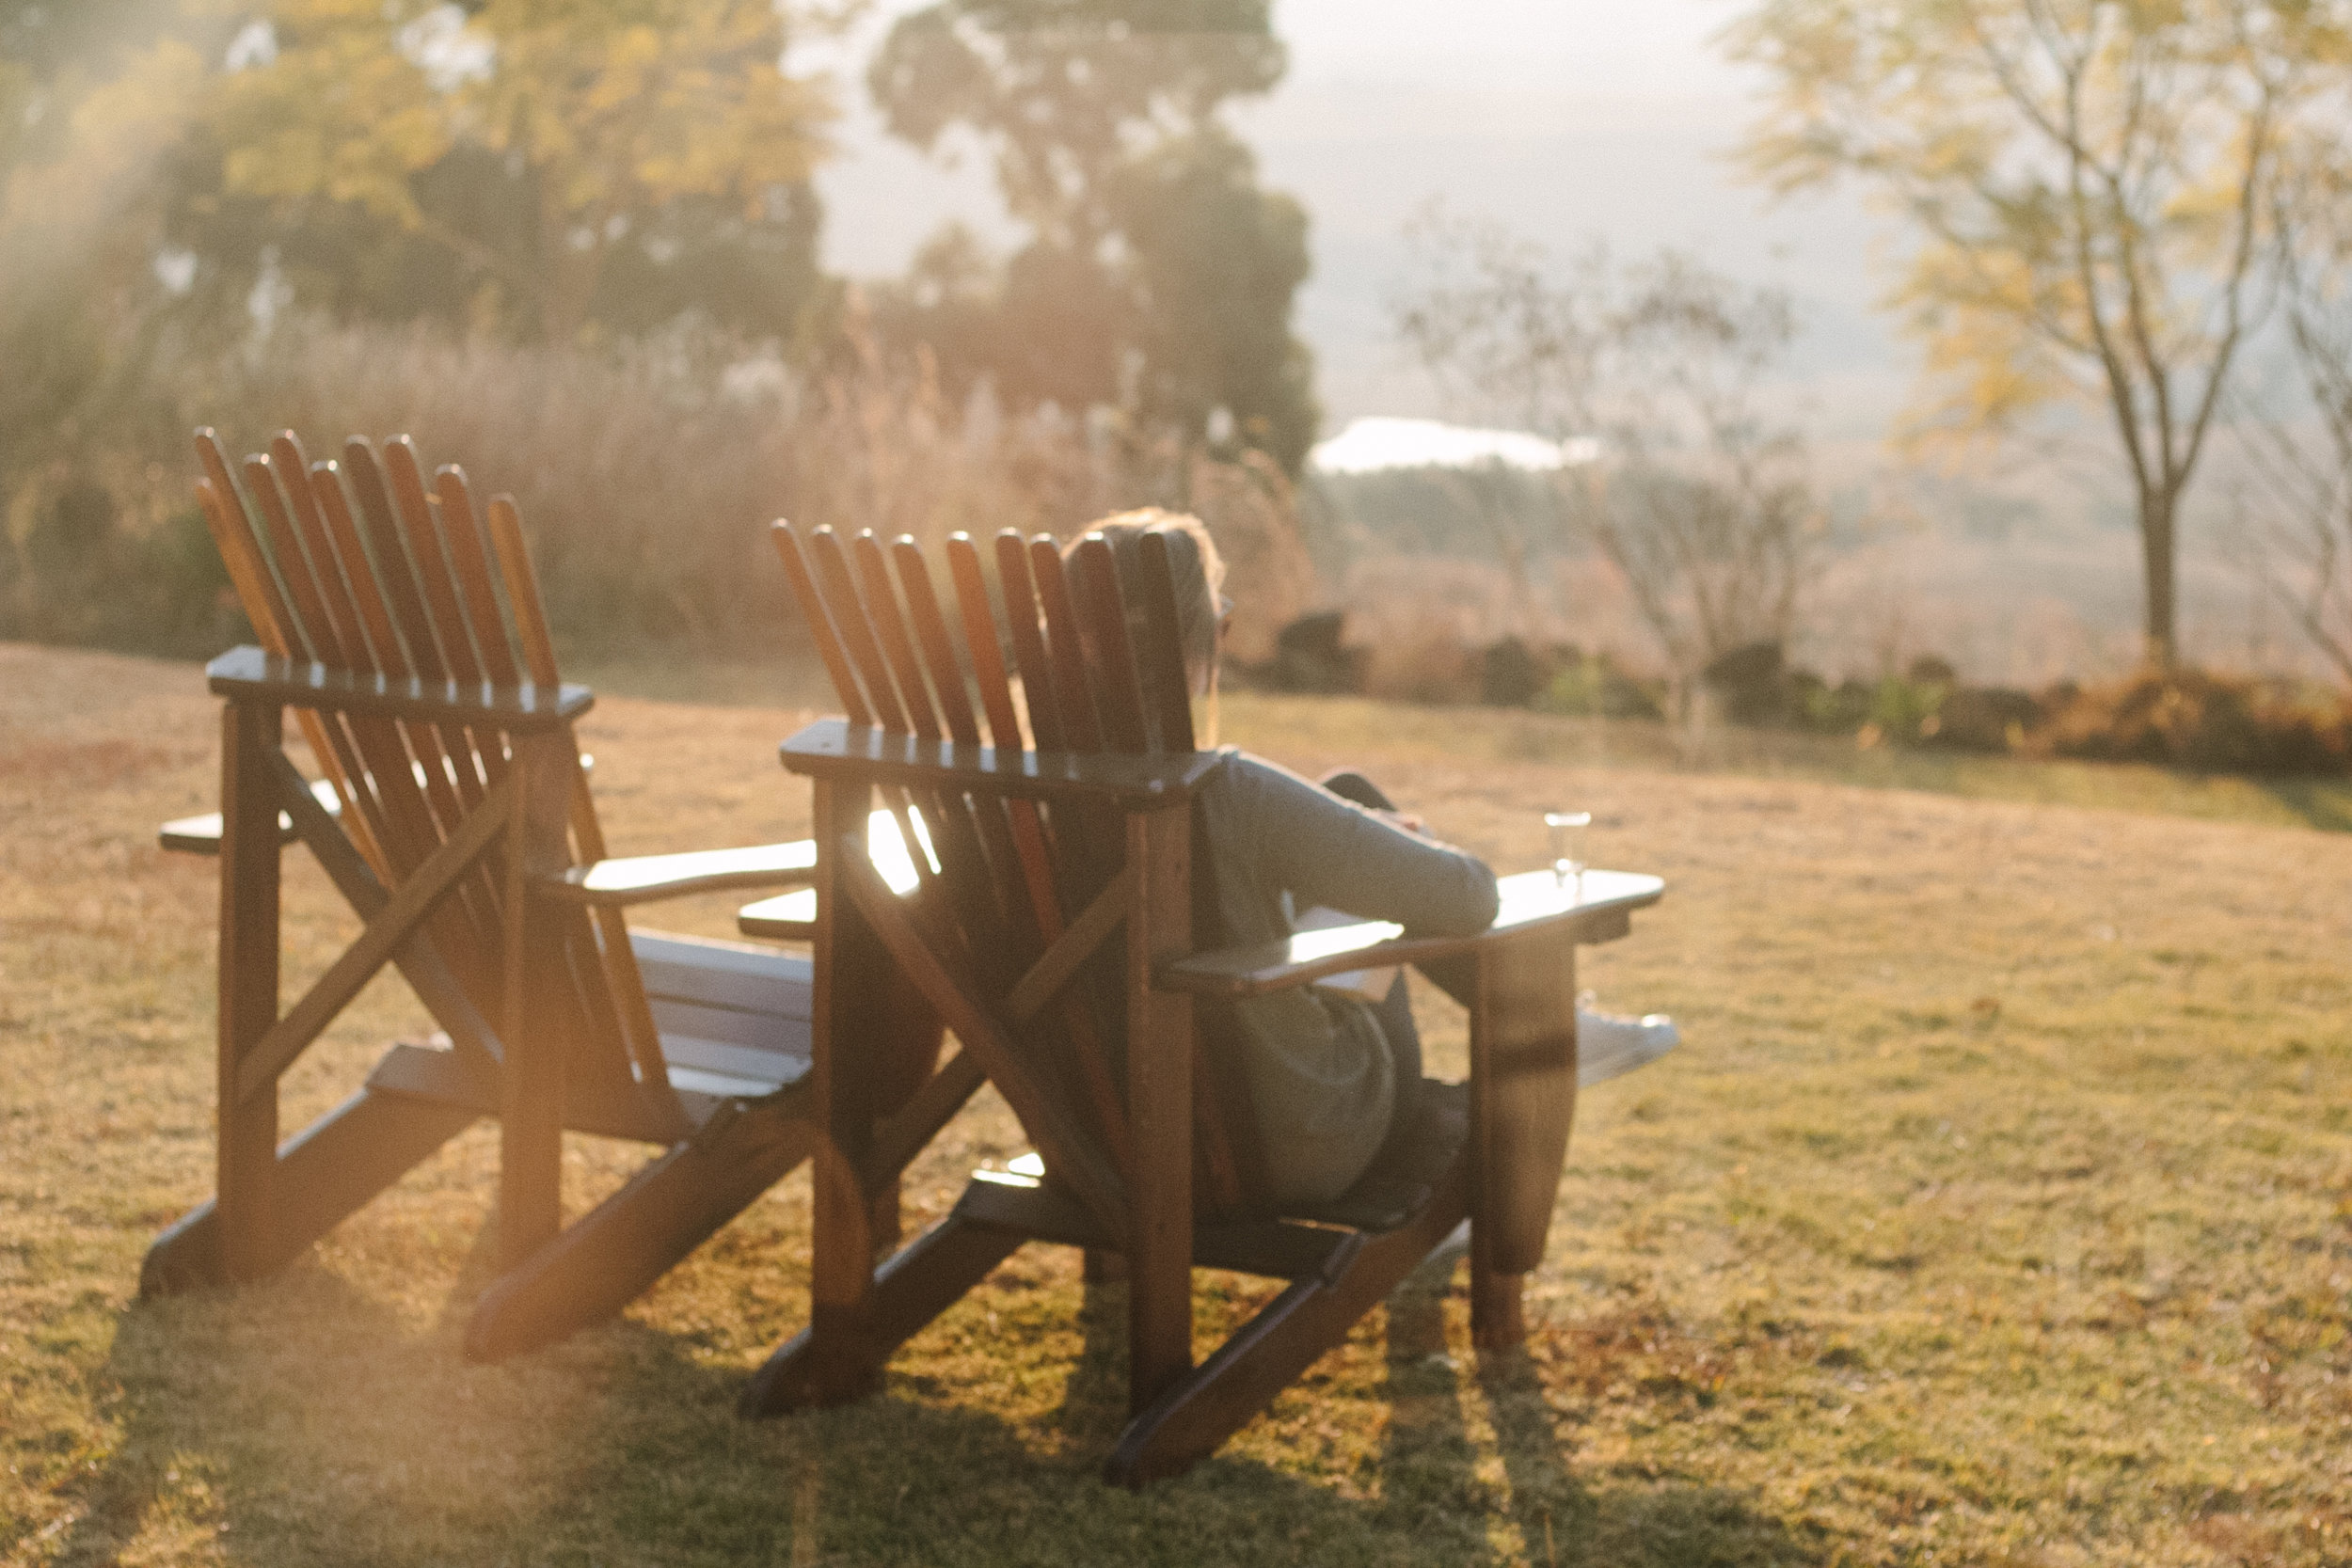 Enjoying the sun / An Inspiring Stay at Antbear Eco Lodge // Drakensberg, South Africa